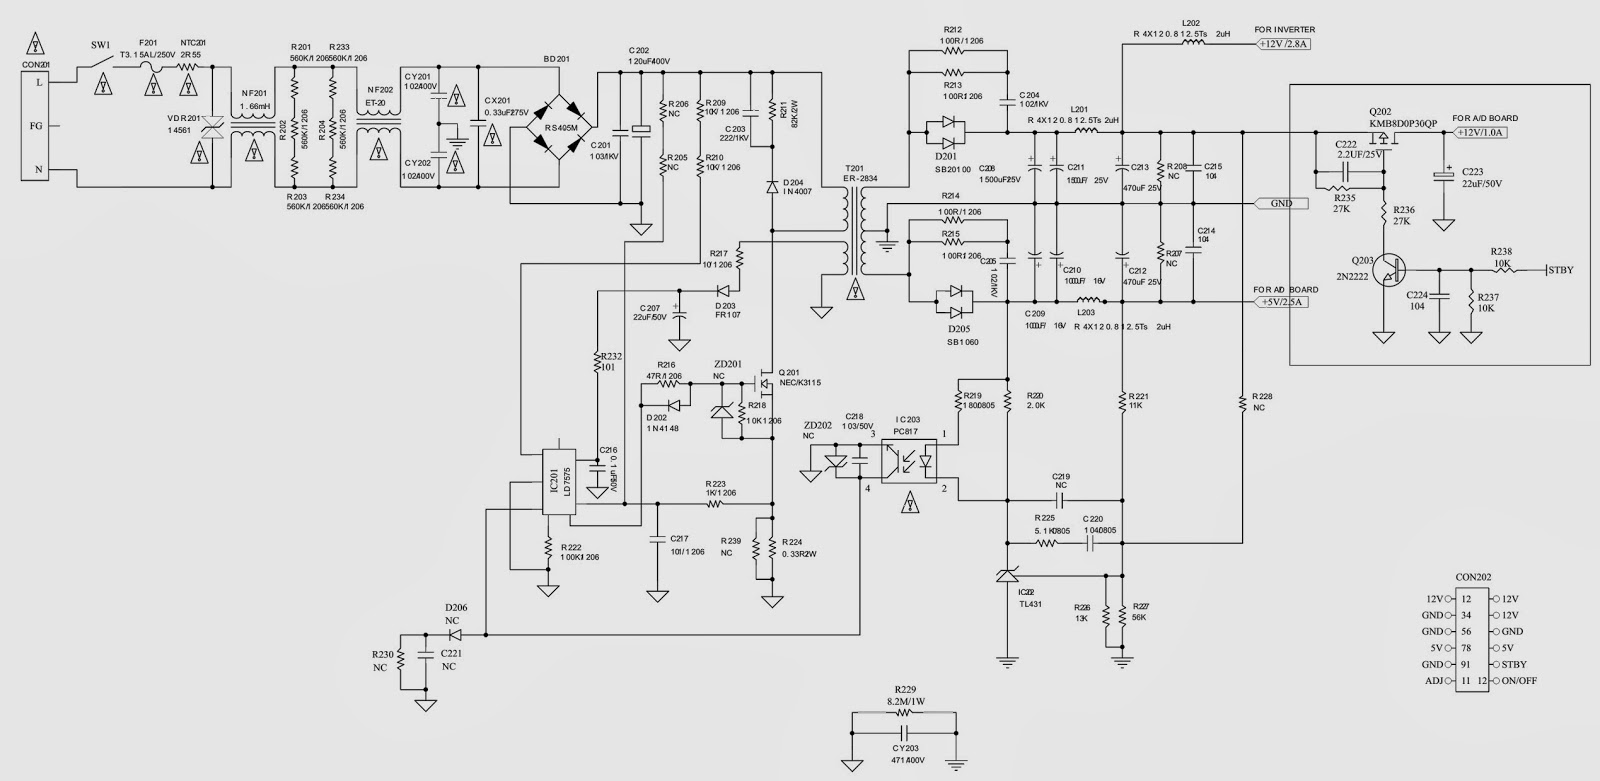 Toshiba Plasma Tv Problems likewise Mp123t Ch Smps Schematics Smps in addition Power Supplies in addition Lct 20kx01lst Akira Lcd Tv Back Light likewise How Lcd Works Diagram. on lcd tv power supply schematic diagram